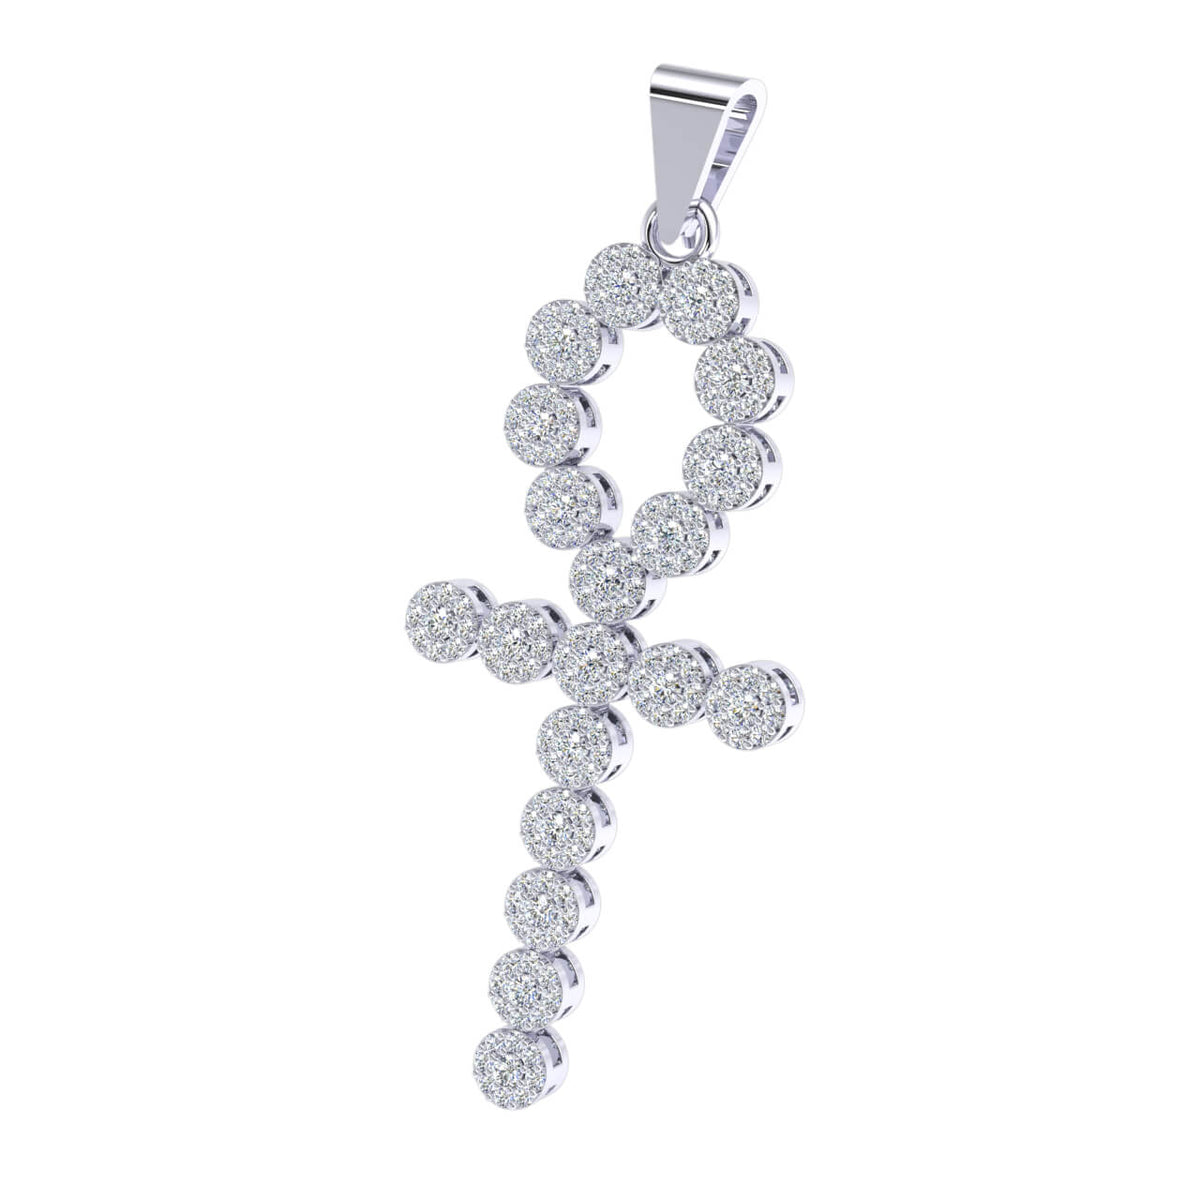 1.00 Ct Ankh Cross Round GH I1-I2 Diamond Religious Pendant For Adults 925 Sterling Silver